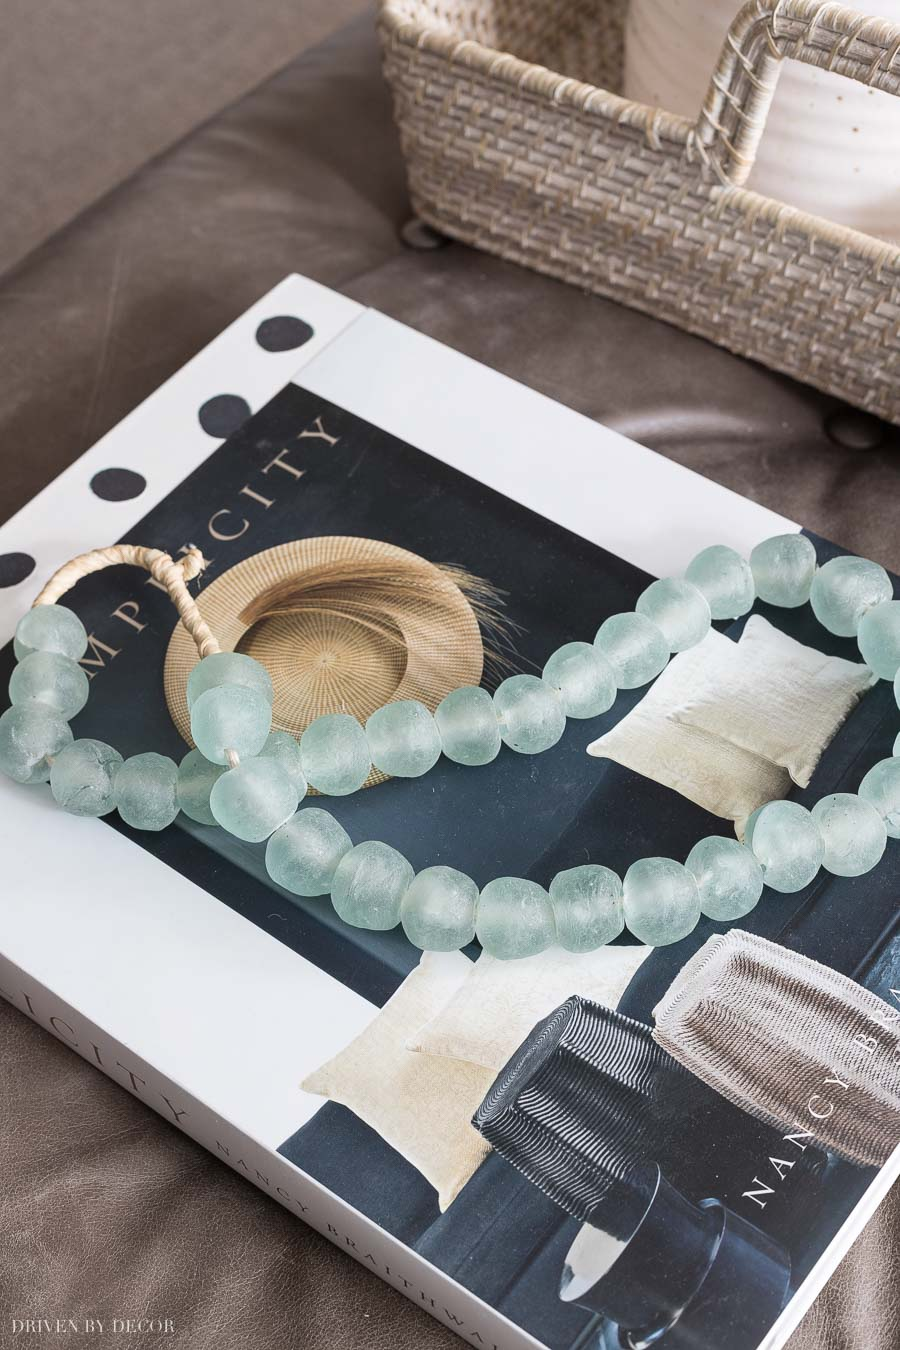 Gorgeous glass beads - one of the many ideas for coffee table decor in this post!